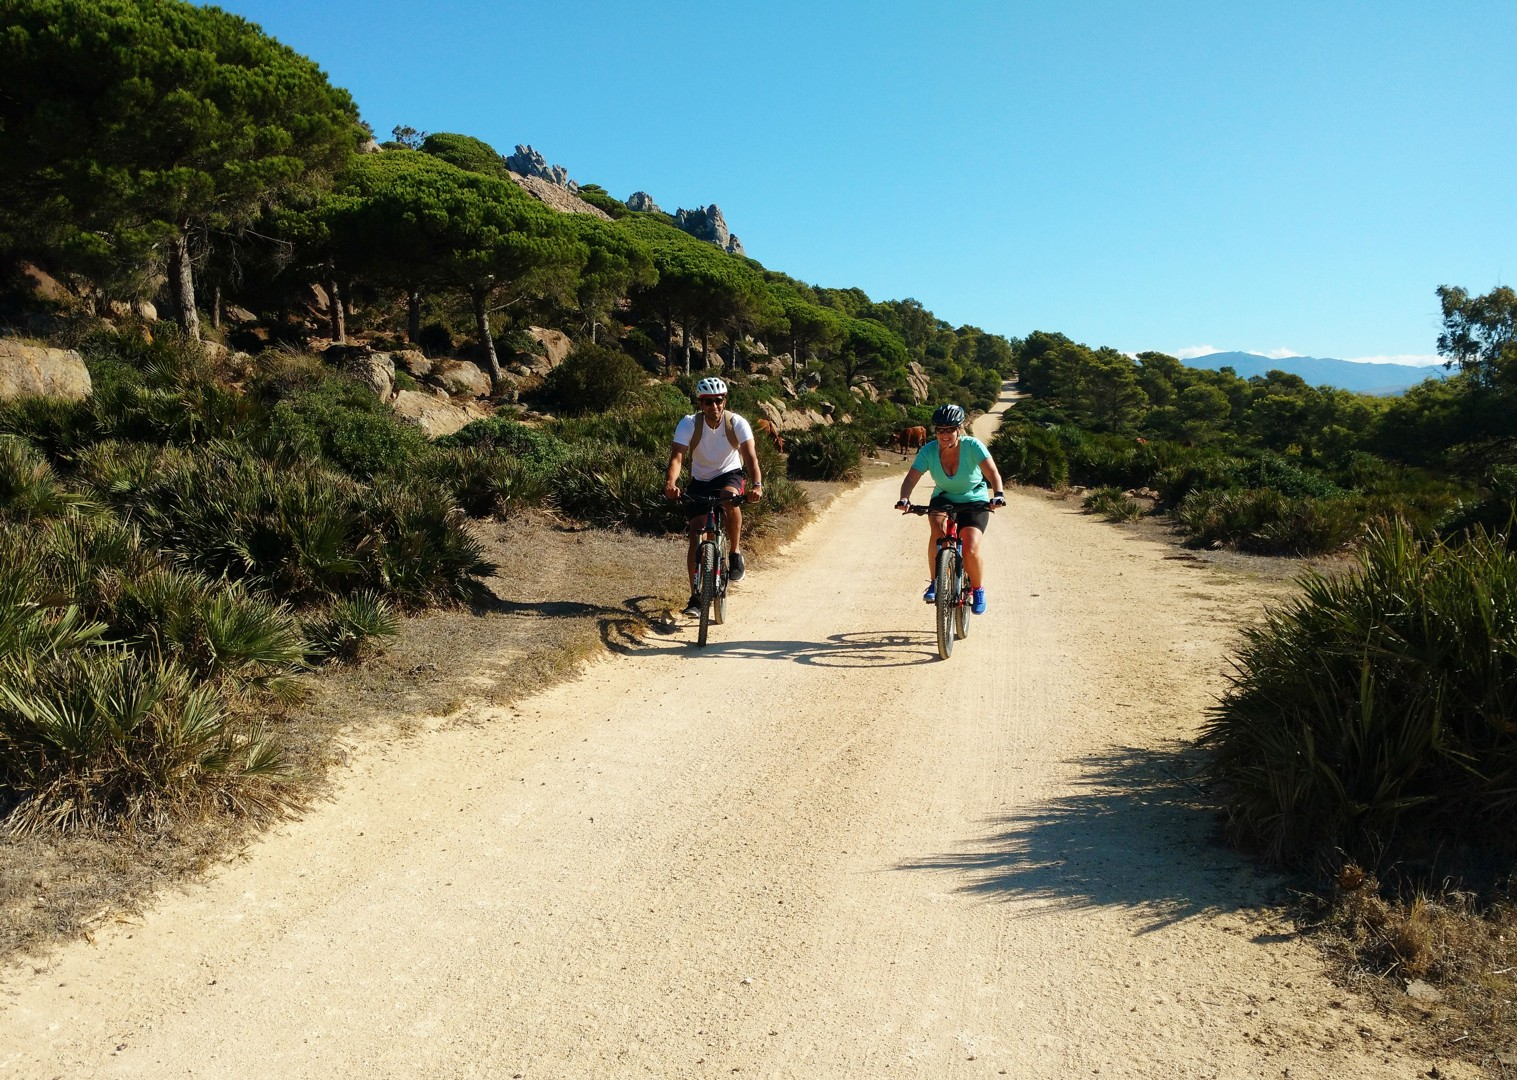 natural-spanish-beaches-fun-for-family-cycling.jpg - Southern Spain - Coastal Adventurer - Self-Guided Family Cycling Holiday - Family Cycling